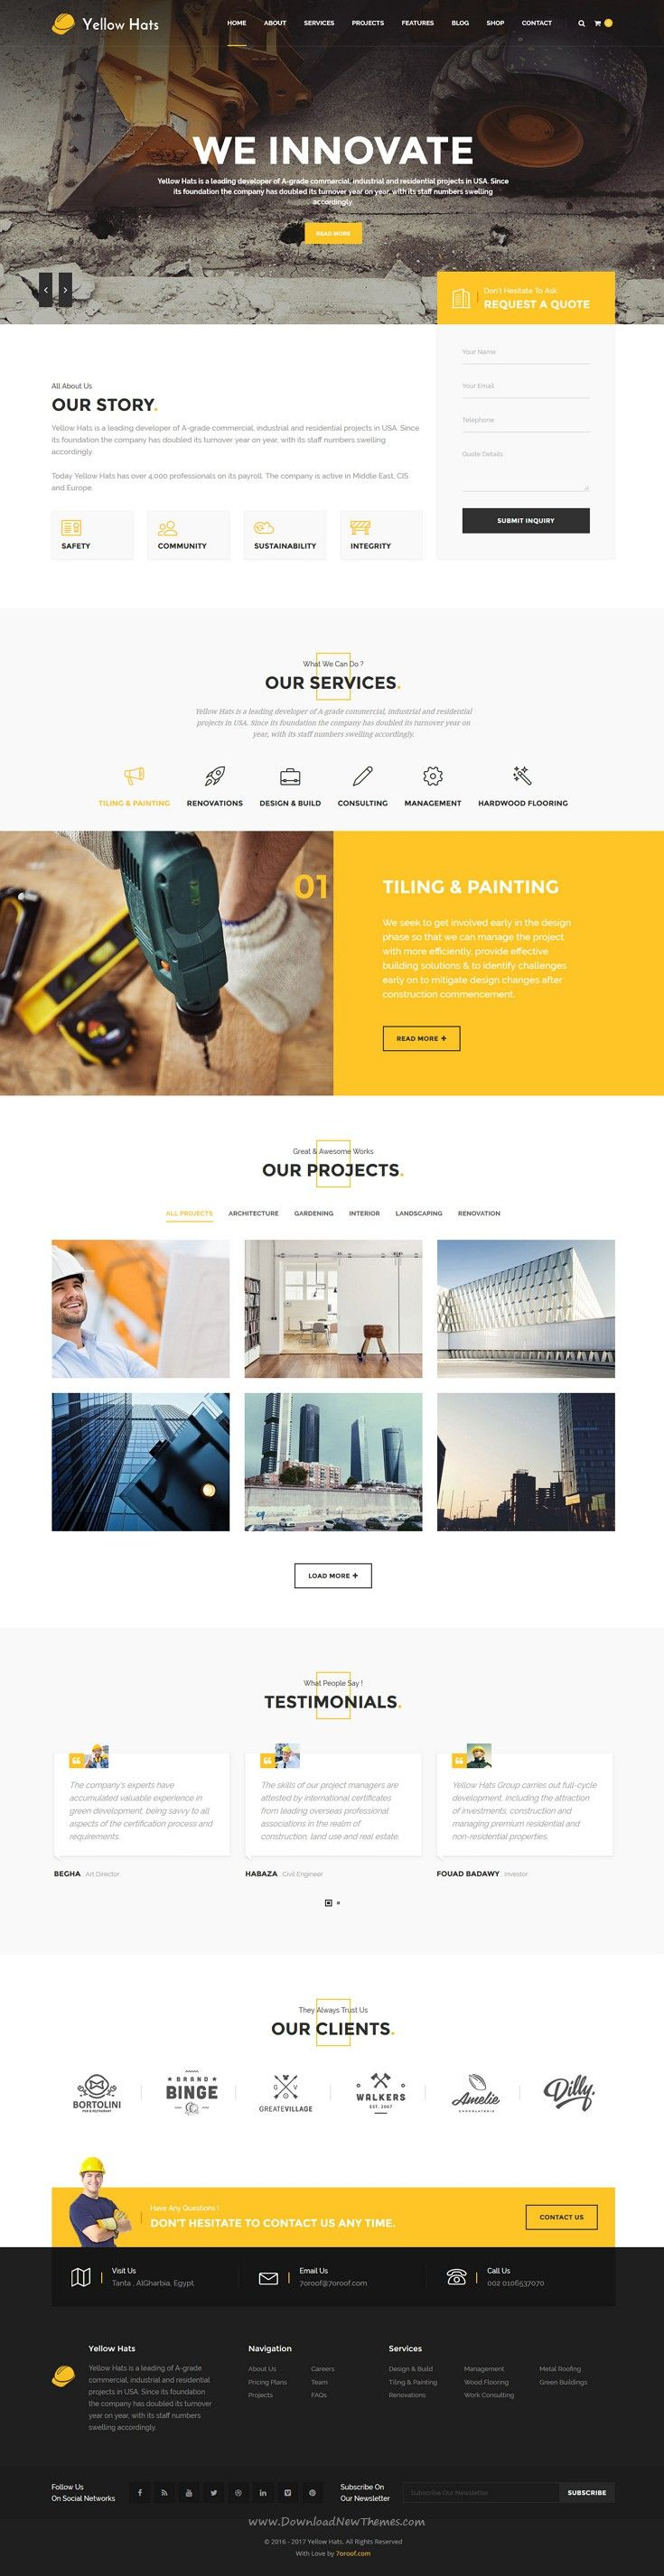 Yellow Hats is a stunning, professional and flexible WordPress #Theme based on Strong researches into the field of business, #Construction and Handyman Business #website. Download Now! http://xtremefreelance.com/contact-us/